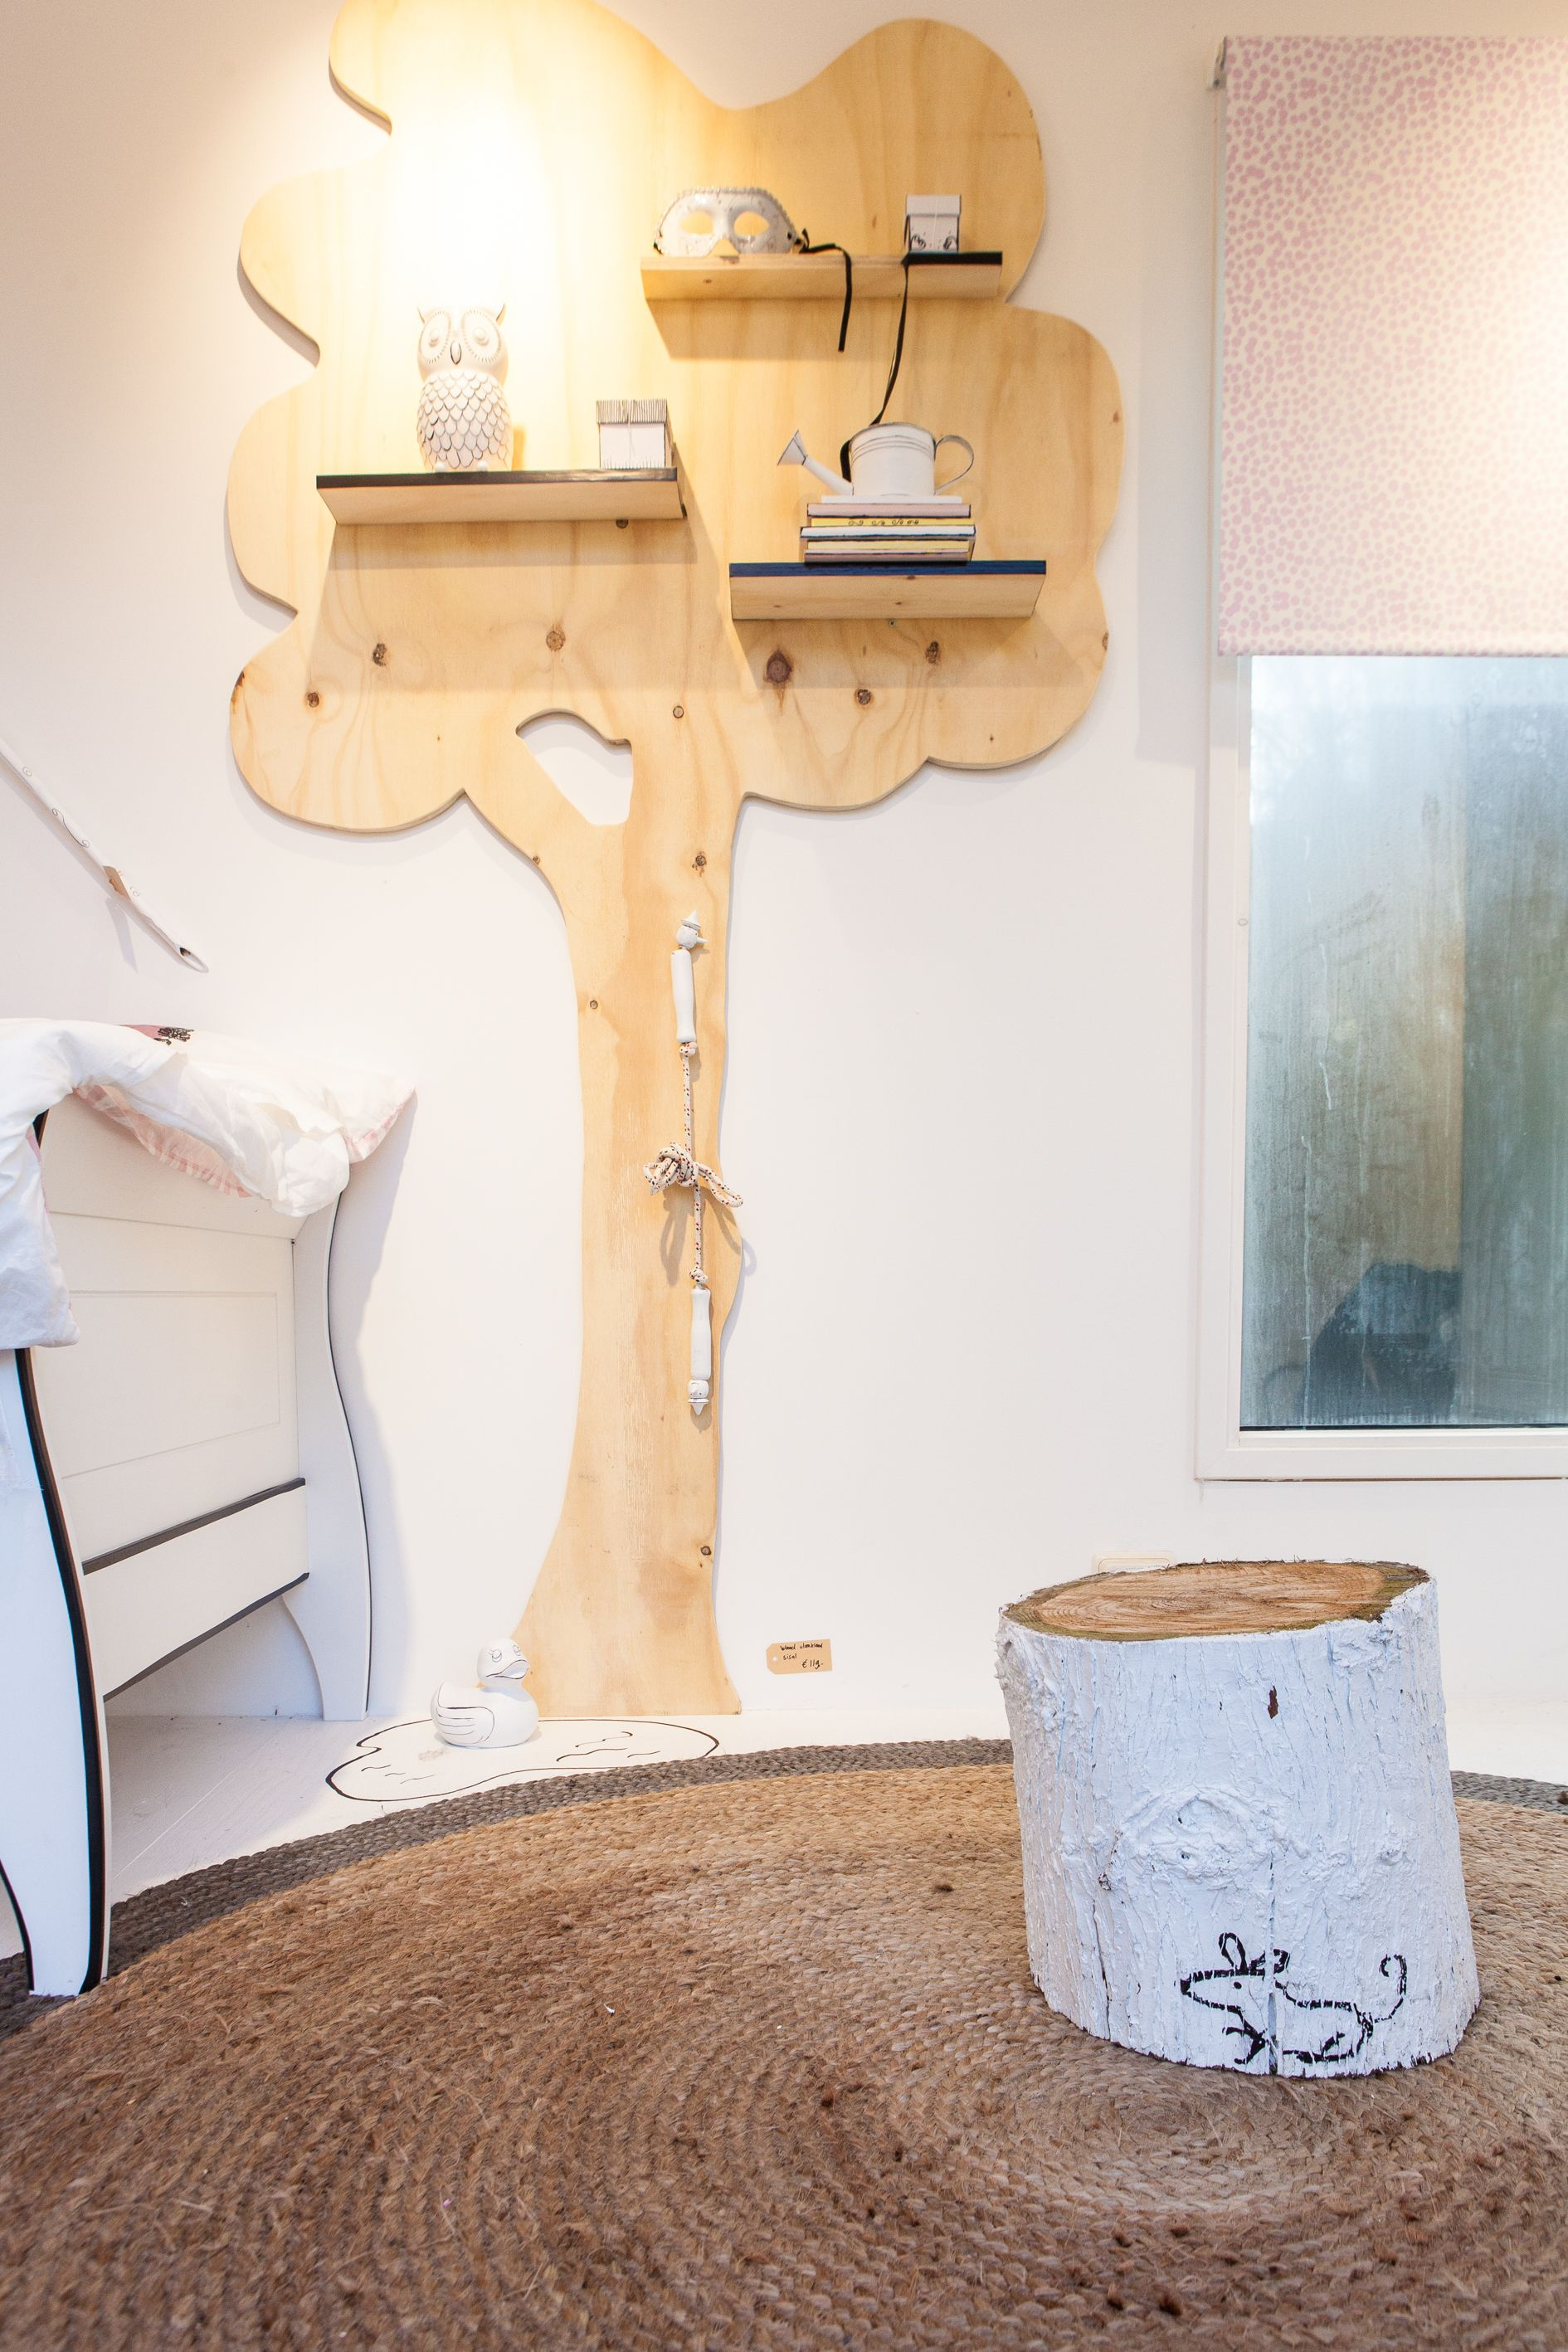 Decoratie Boom Kinderkamer.Woood Wanddecoratie Boom Met Uil The Apple Of My Eye Babykamer